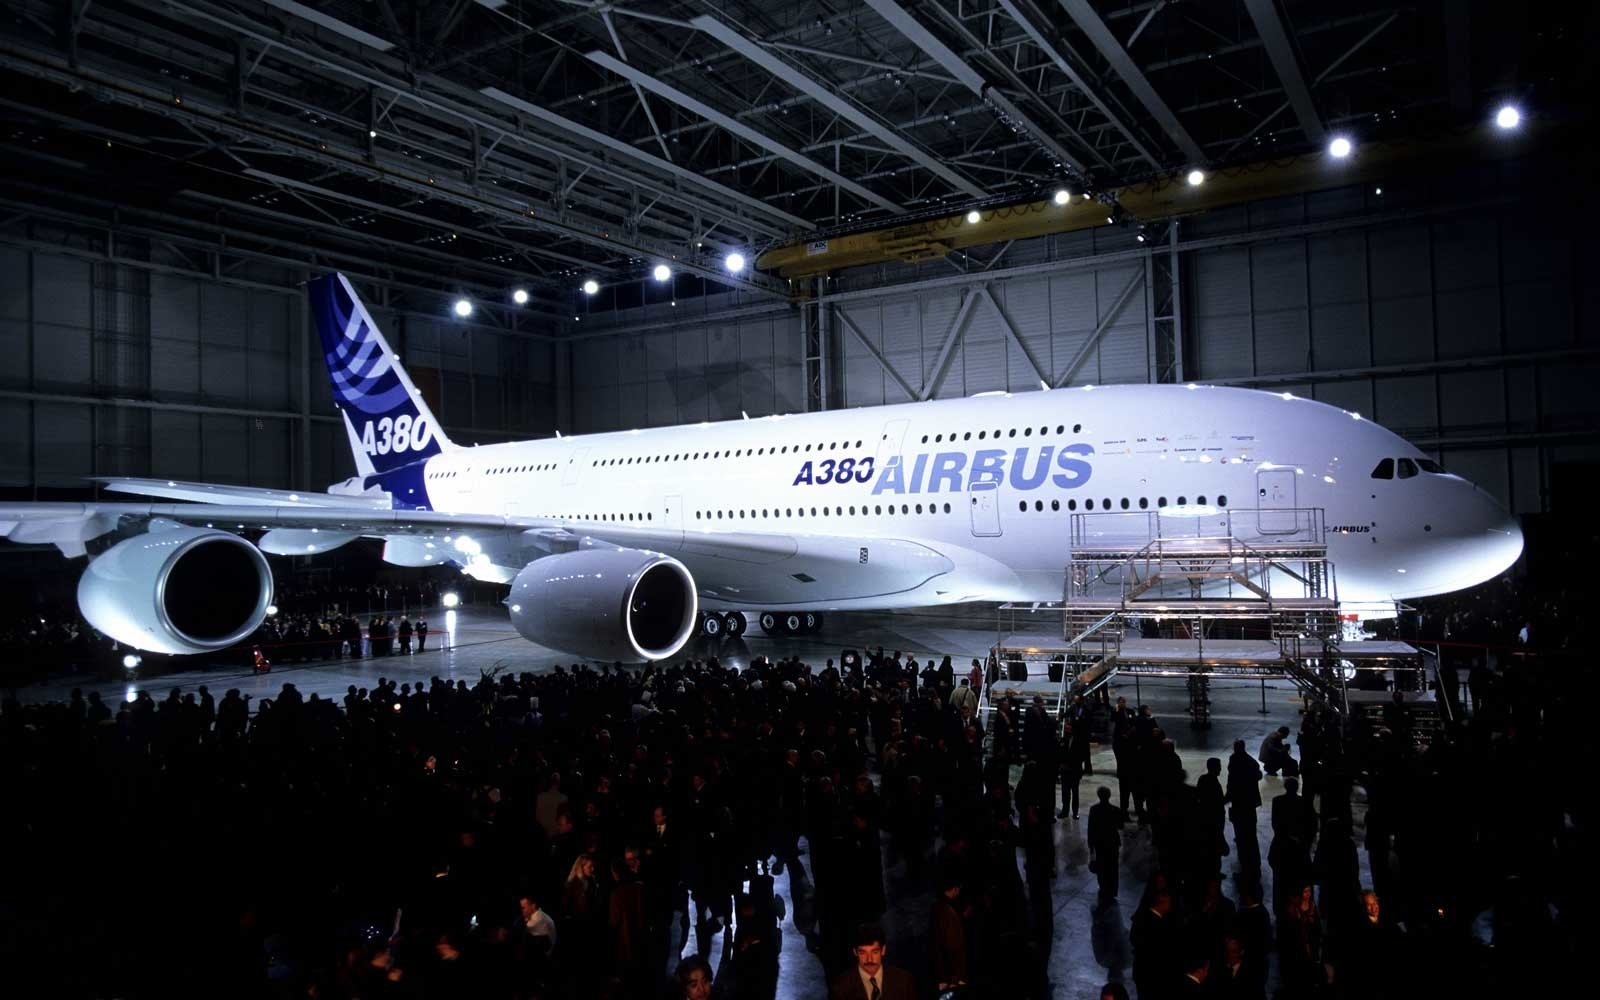 Airbus and Emirates reach agreement on A380 fleet